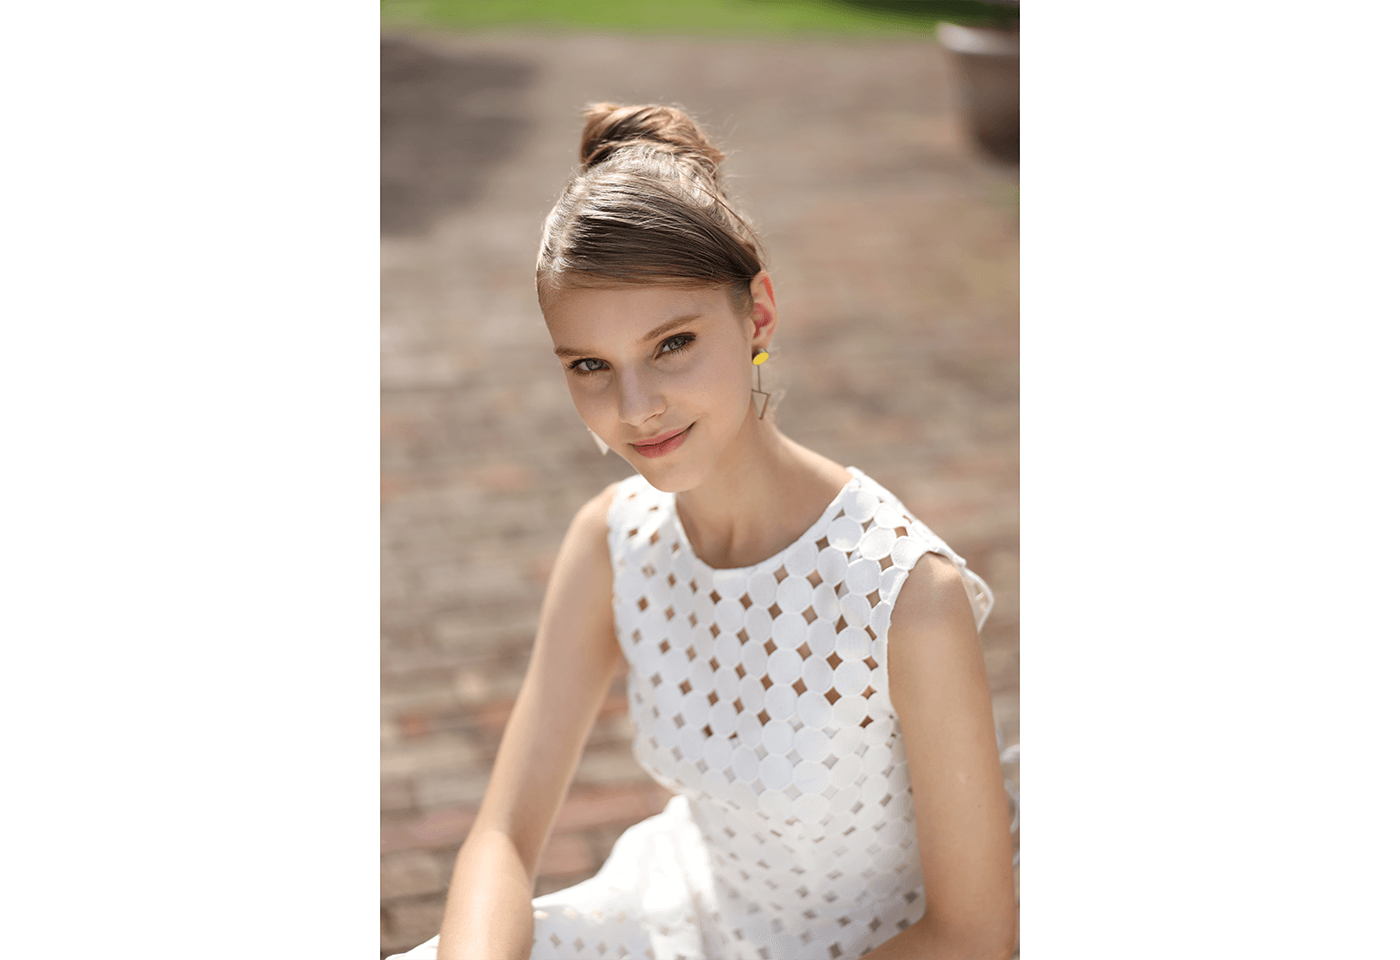 Photograph of girl in white dress taken using RF 28-70mm f/2L USM